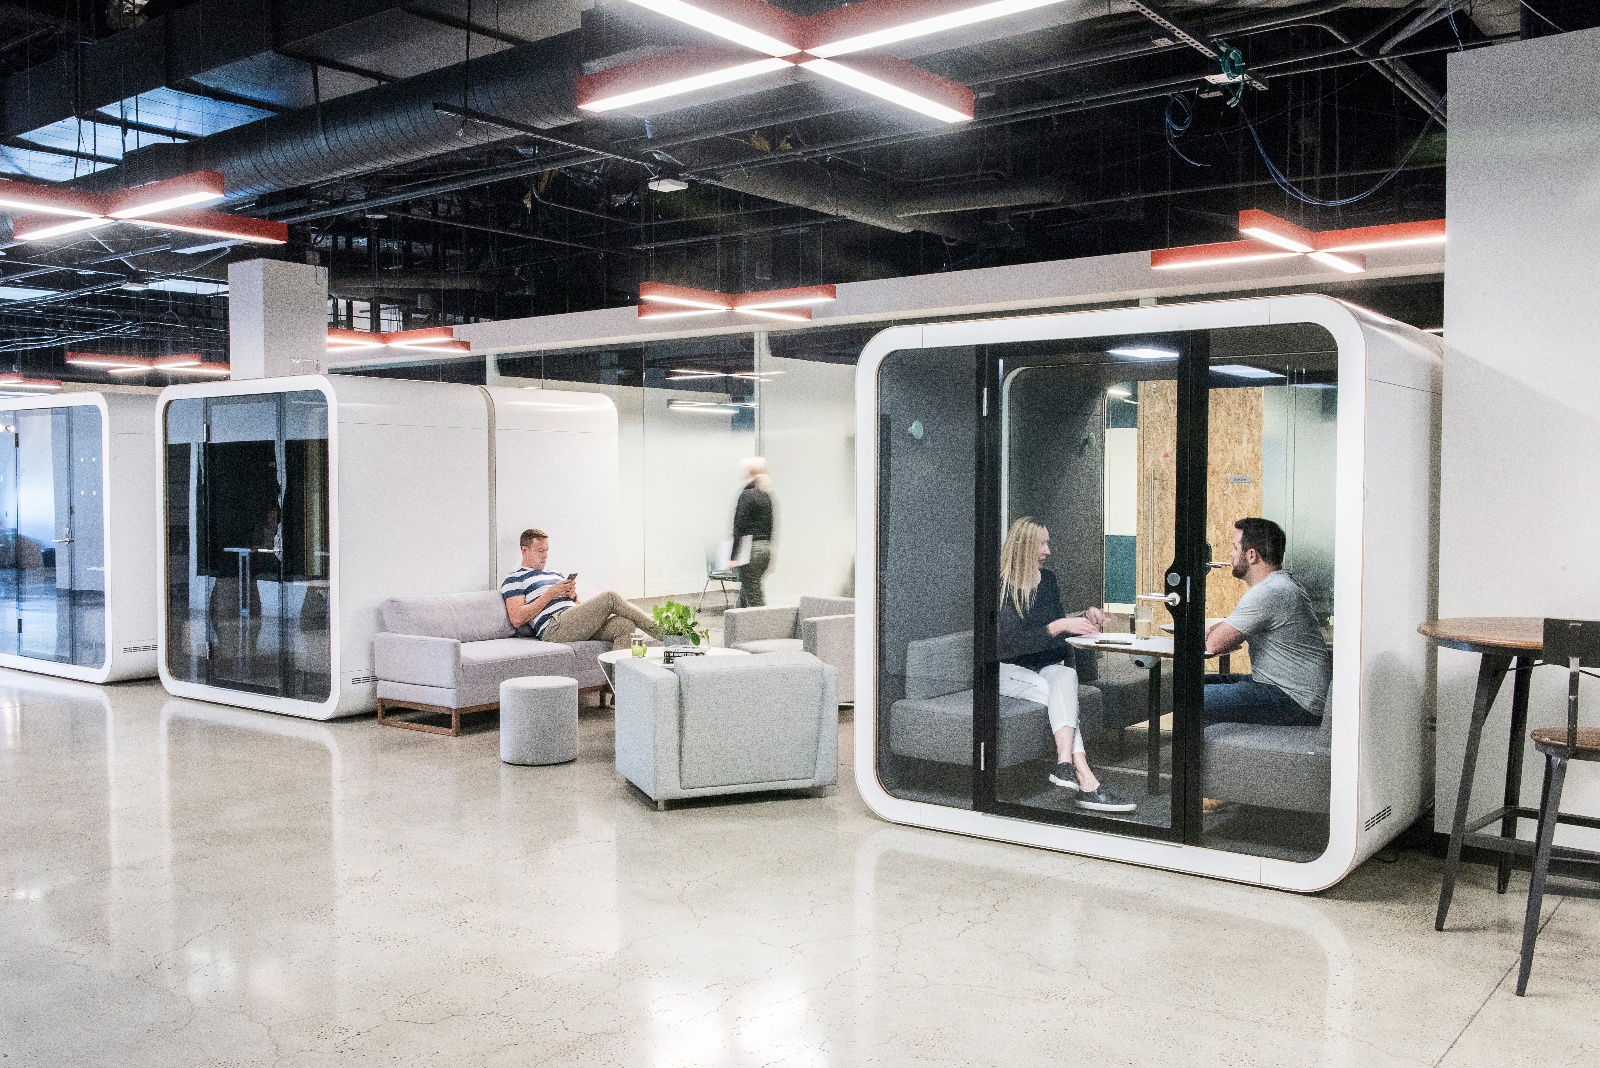 Soundproof meeting pods reduce noise levels and provide privacy in open spaces.